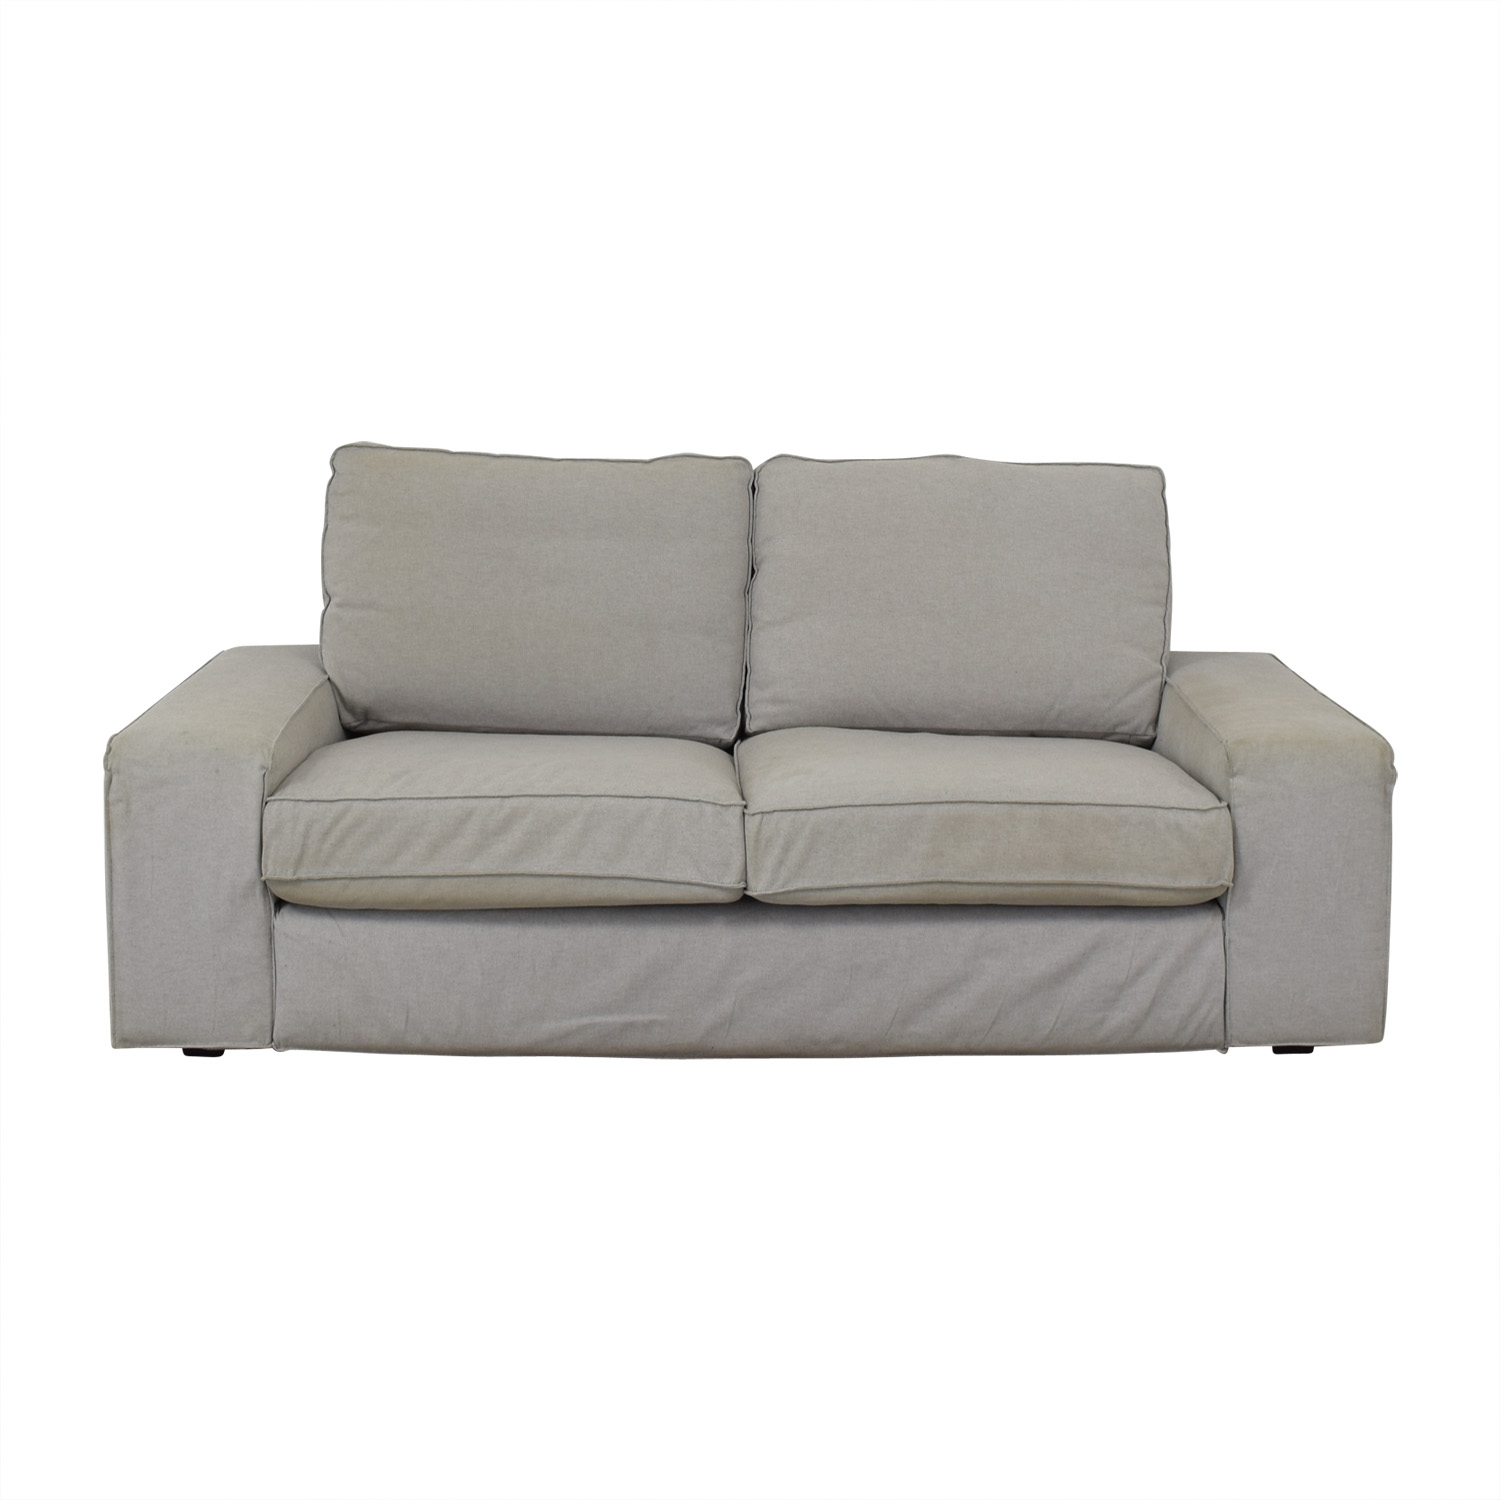 IKEA IKEA Kivik Light Grey Sofa second hand